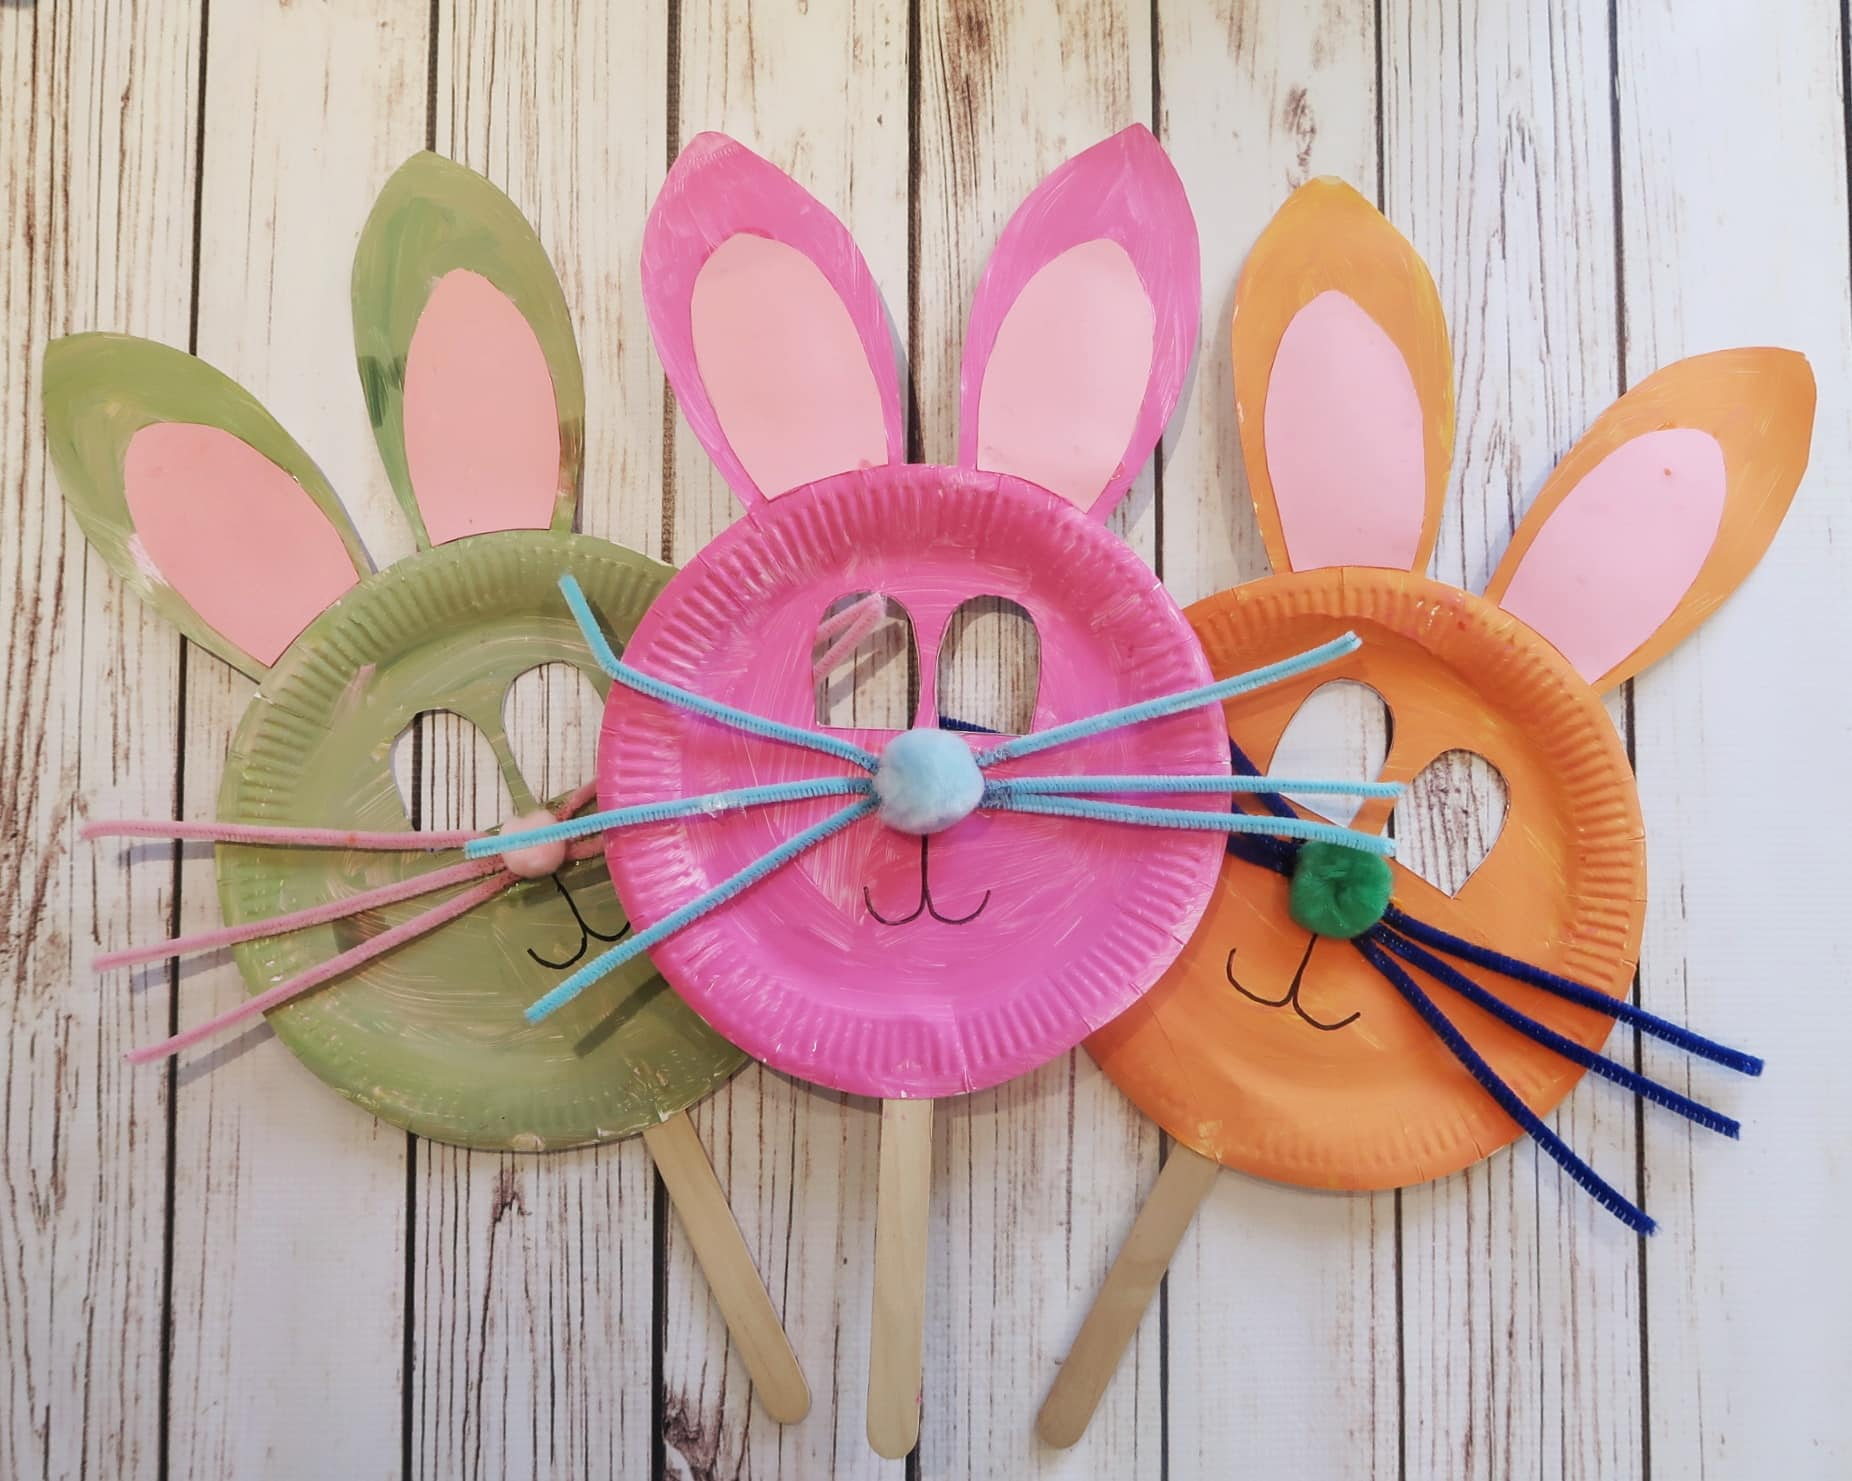 Easter Crafts - Paper Plate Bunny Masks & 3 Easy Easter Crafts with Paper Plates - Someoneu0027s Mum